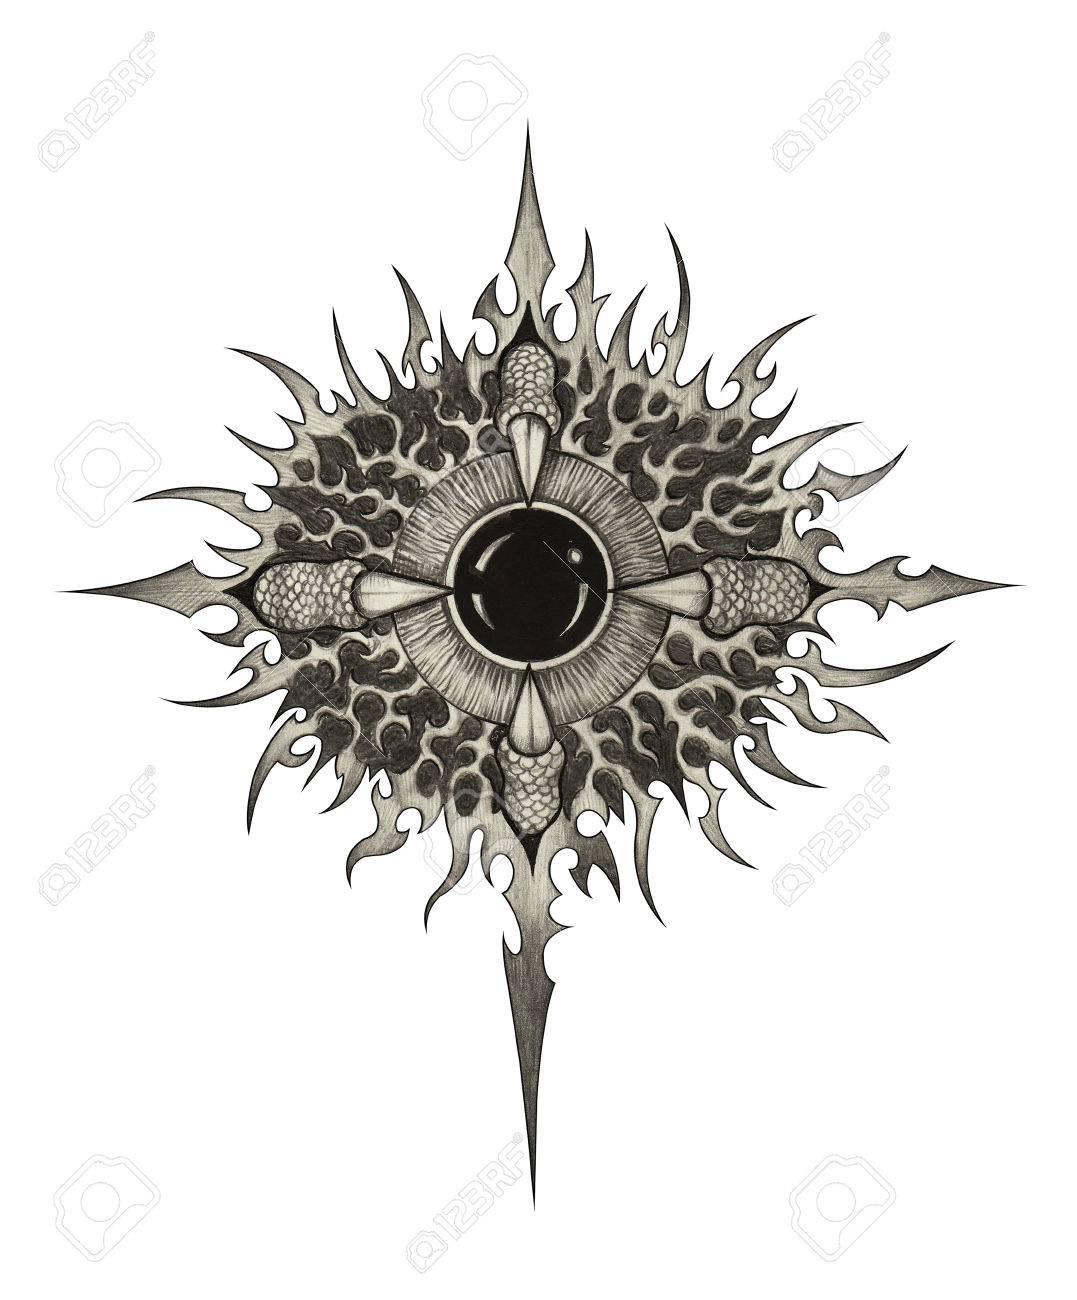 Art Surreal Eye Dragon Tattoo Hand Drawing On Paper Stock Photo Picture And Royalty Free Image Image 66798160